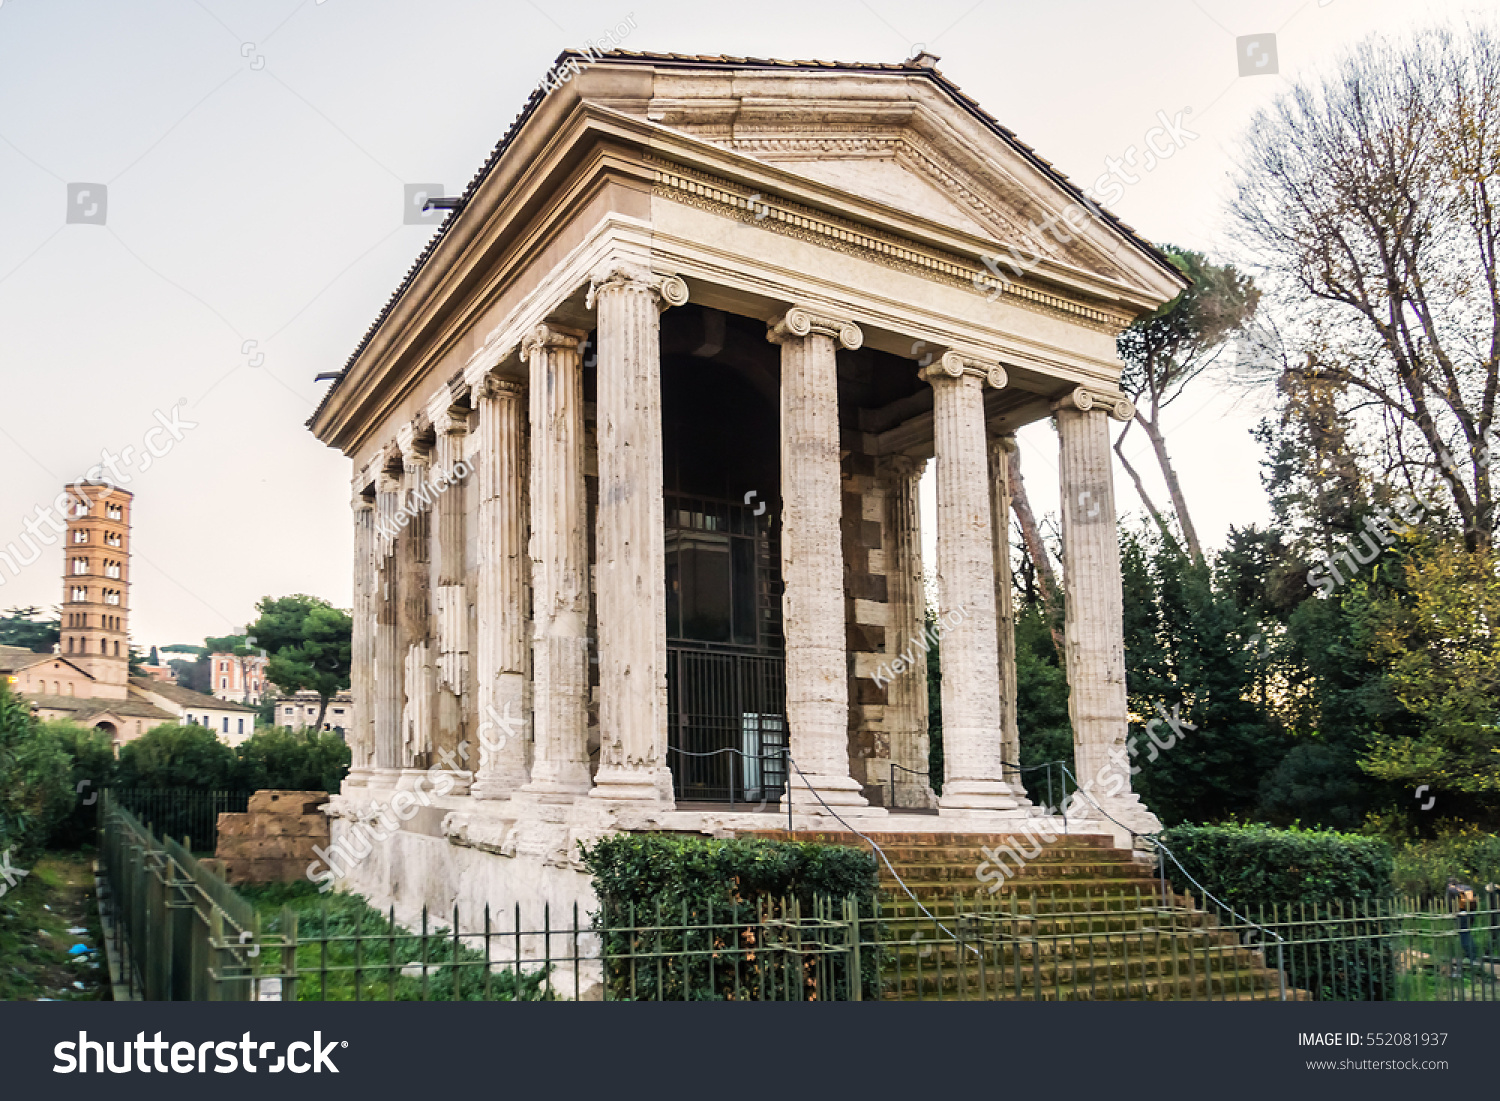 temple of fortuna virilis essay The temple of portunus (italian: tempio di portuno) is an ancient building in rome, italy, the main temple dedicated to the god portunus in the city it is in the ionic order and is still more familiar by its erroneous designation, the temple of fortuna virilis (manly fortune) given it by.